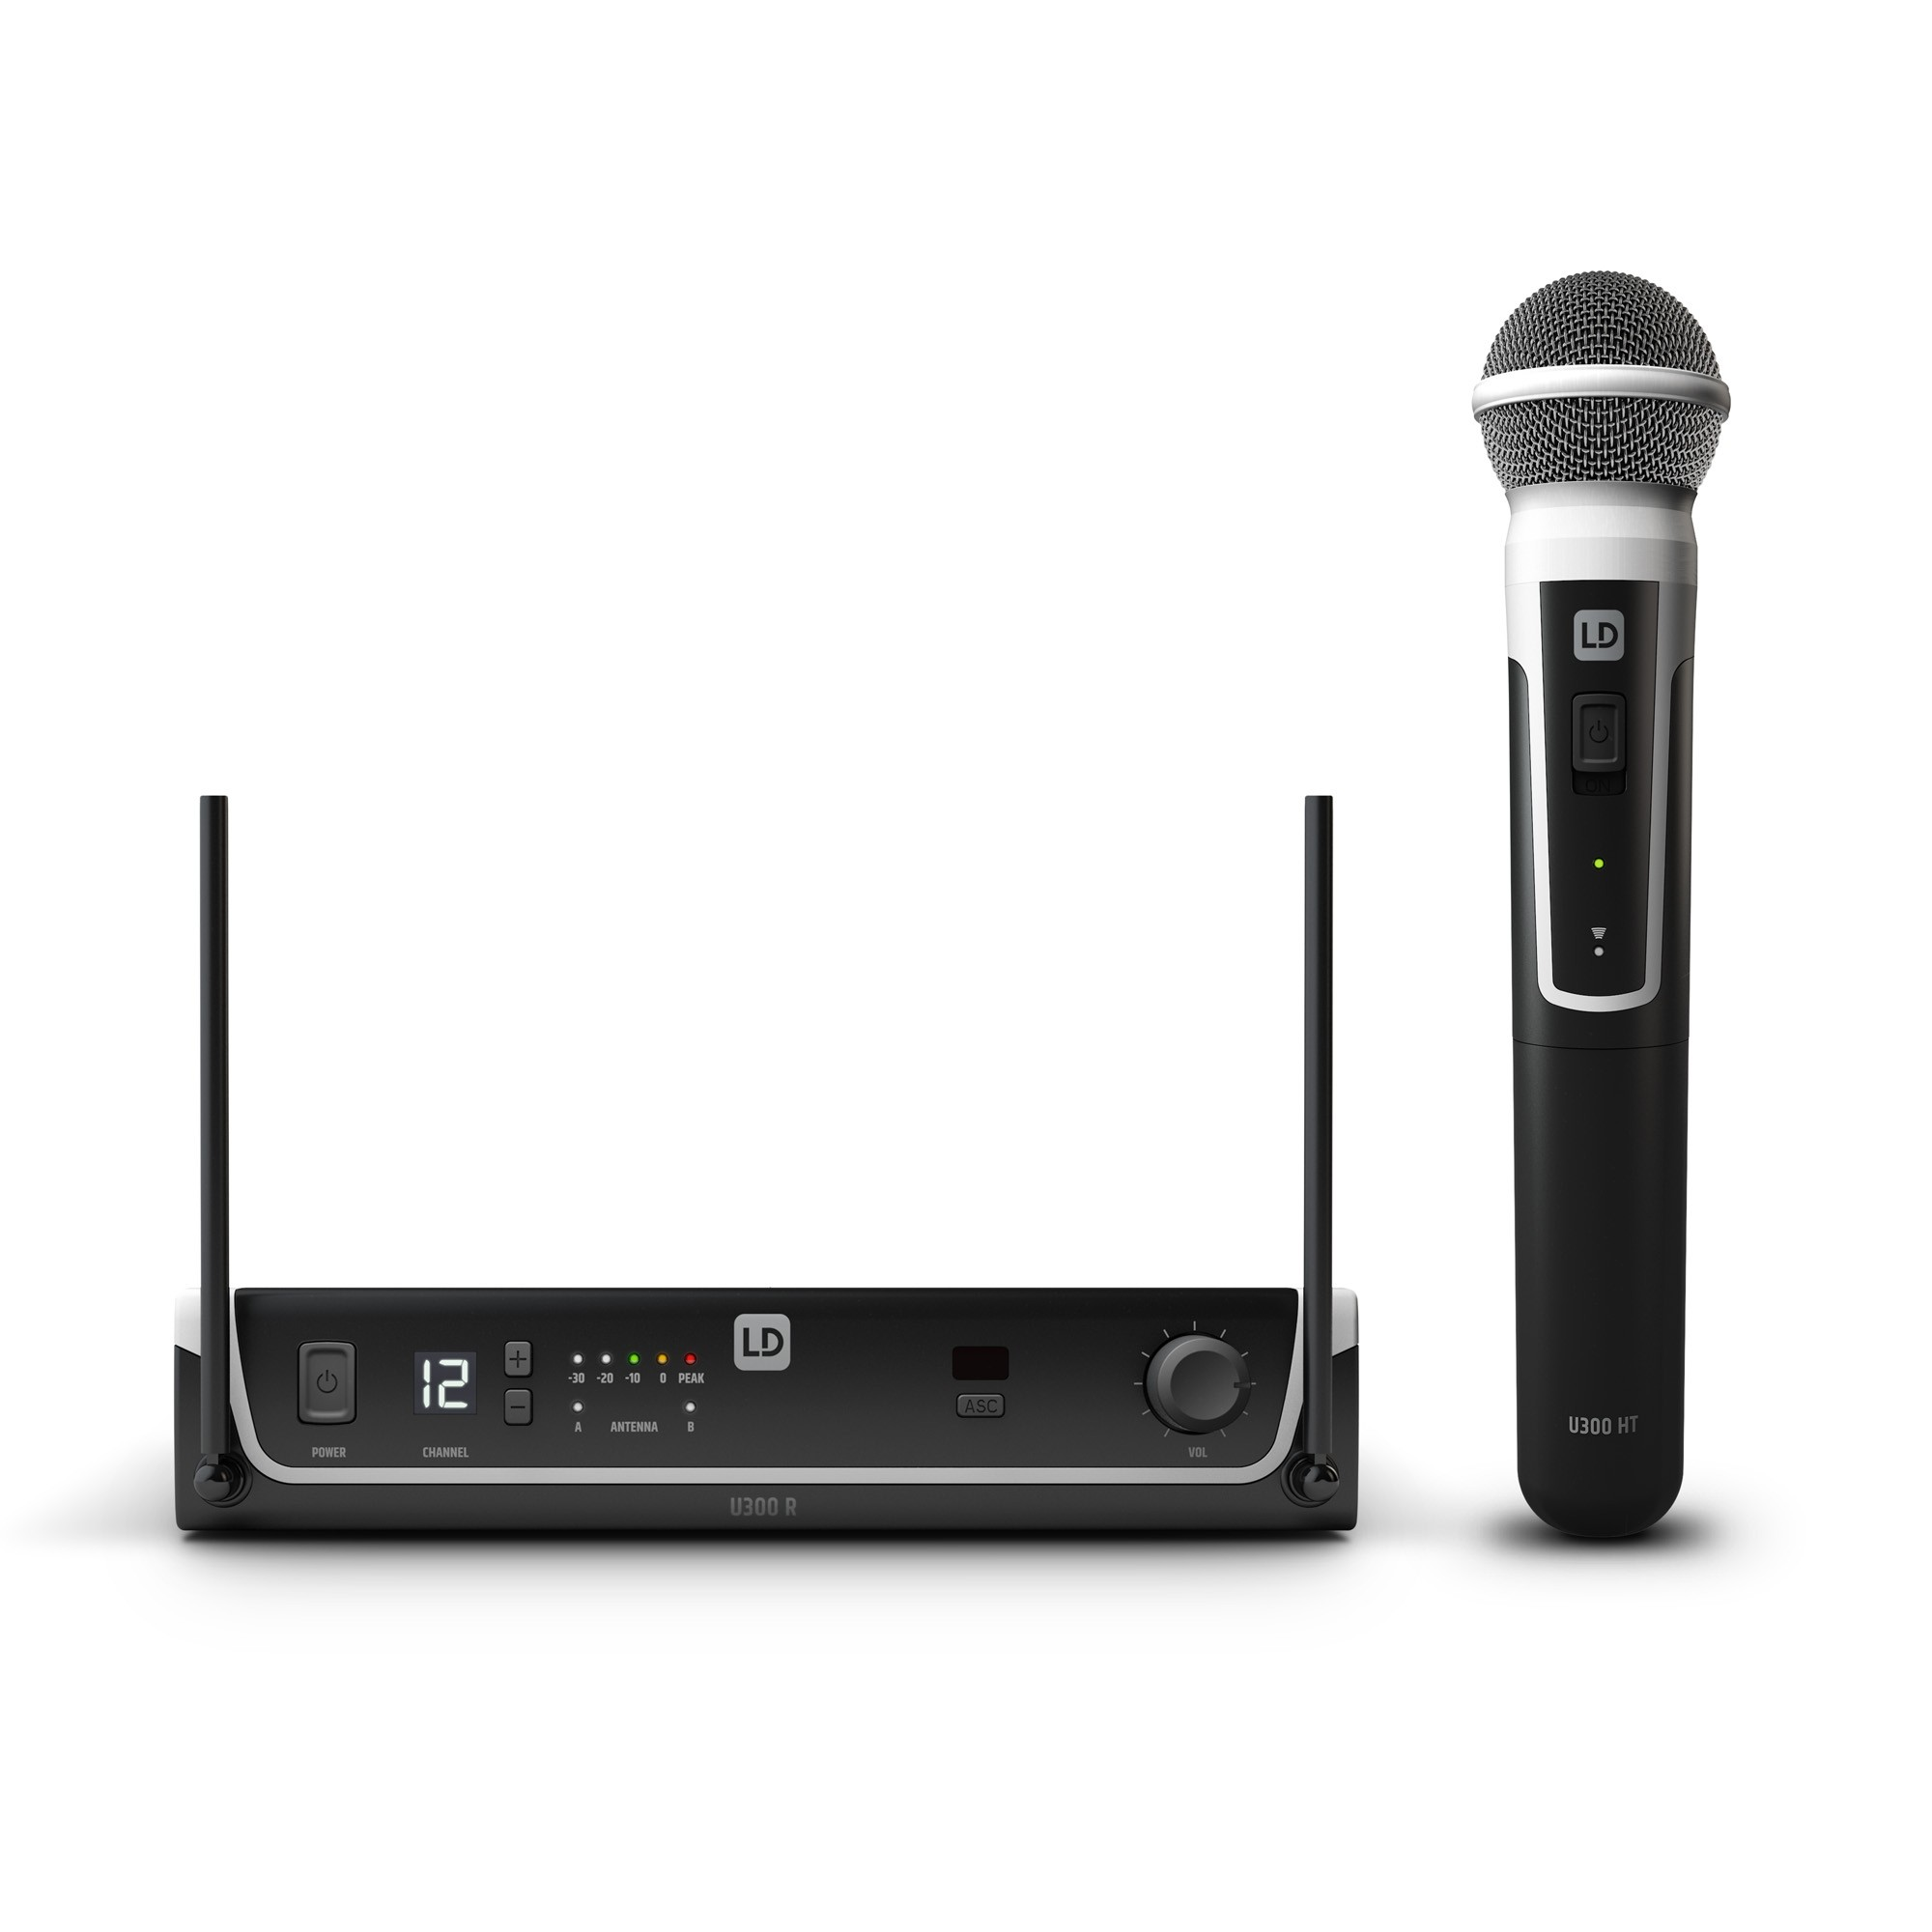 U306 HHD Wireless Microphone System with Dynamic Handheld Microphone